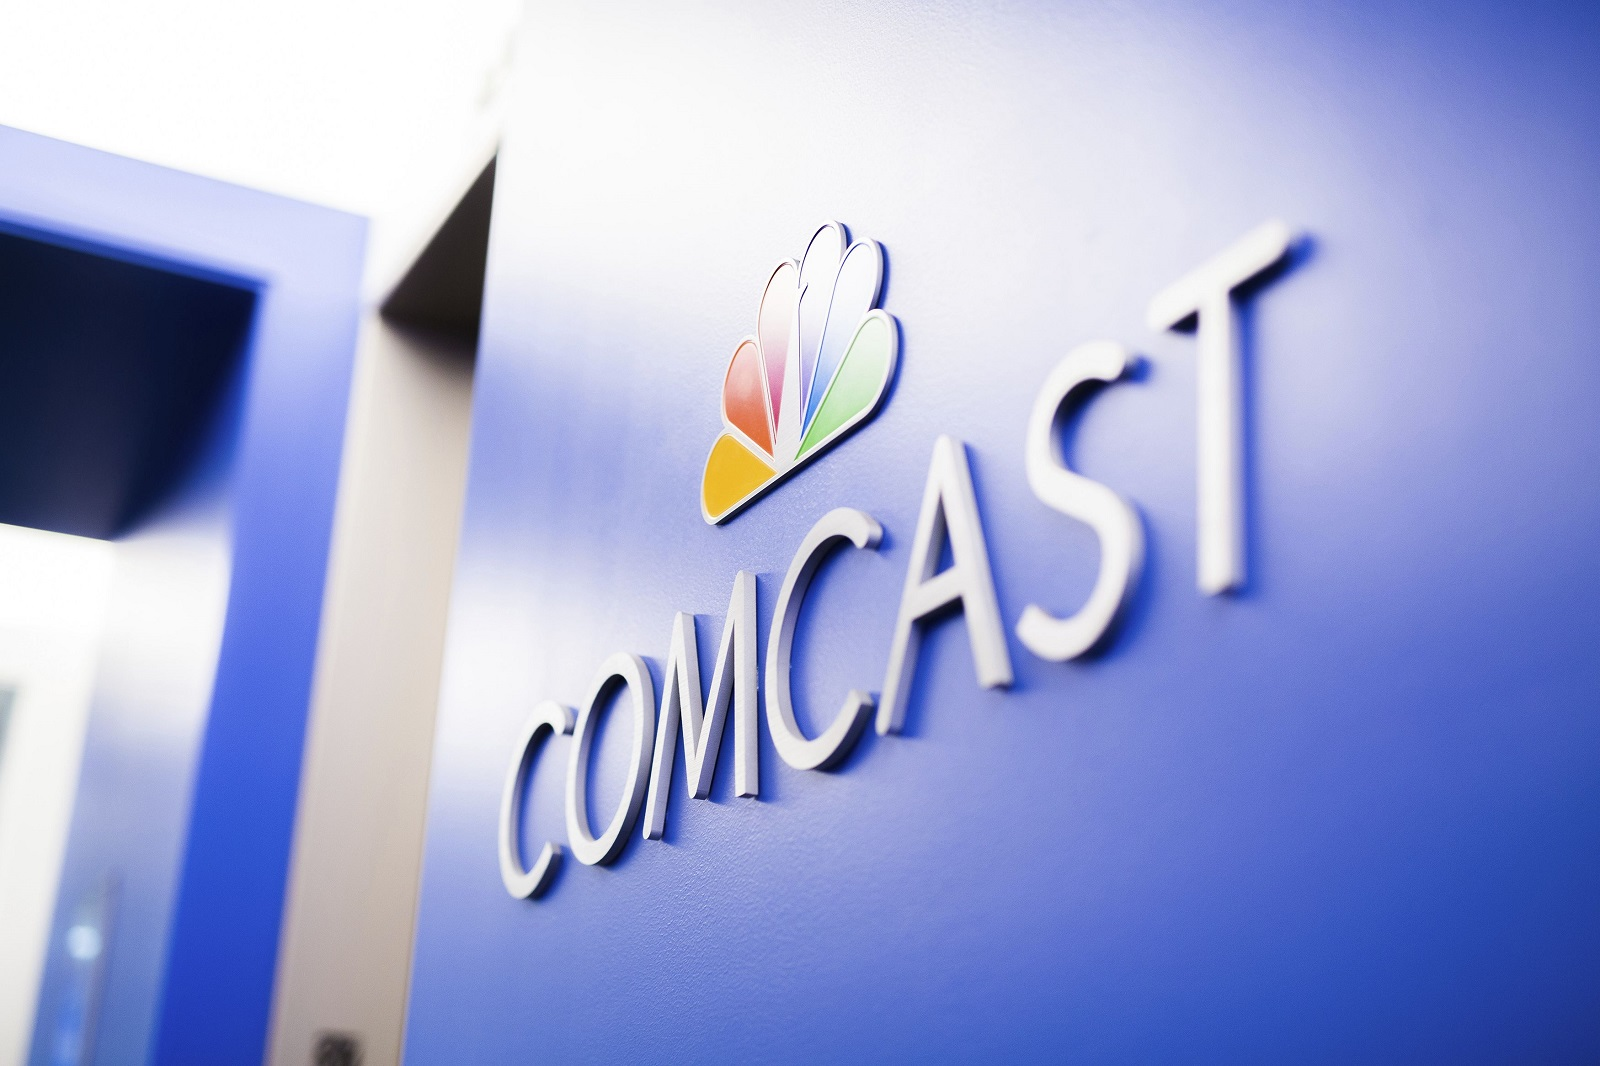 Some of the money you save on Black Friday can pay for Comcast's new price hike